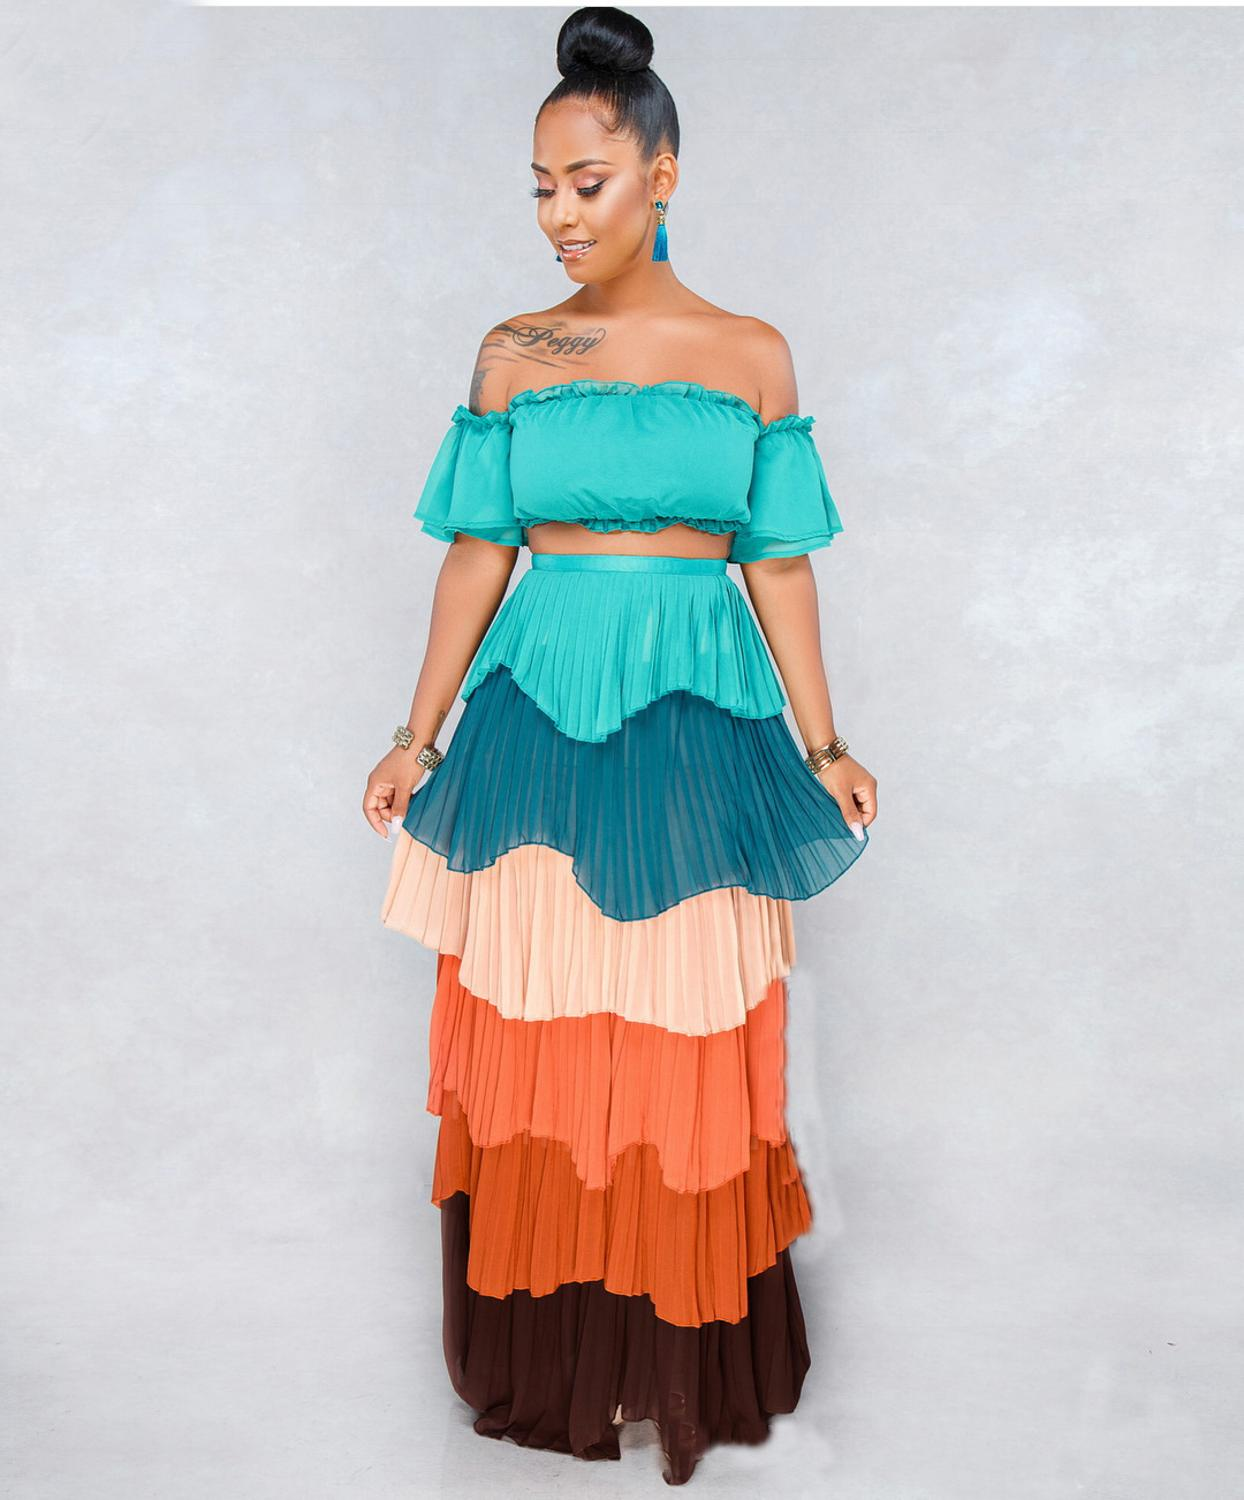 YSMARKET 2 Color Two Piece Set Hot Sexy Off Shoulder Short Top And Pleated Ruffle Long Maxi Skirts Set Boho Style Beachwear